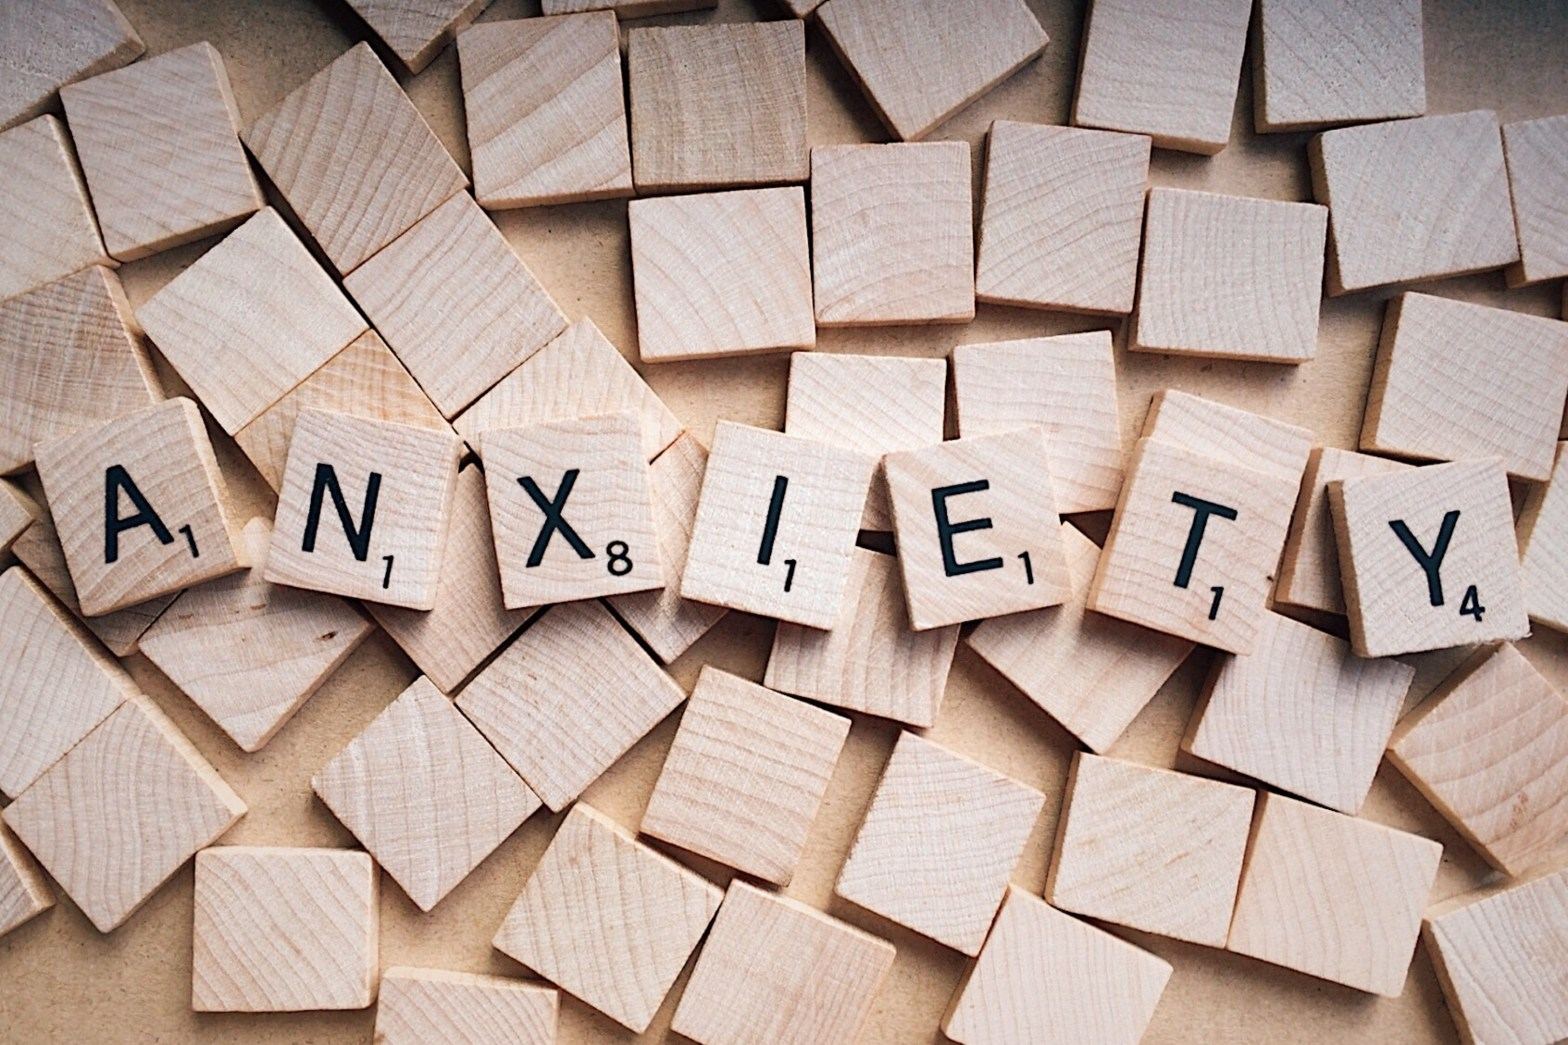 anxiety spelled out in Scrabble tiles